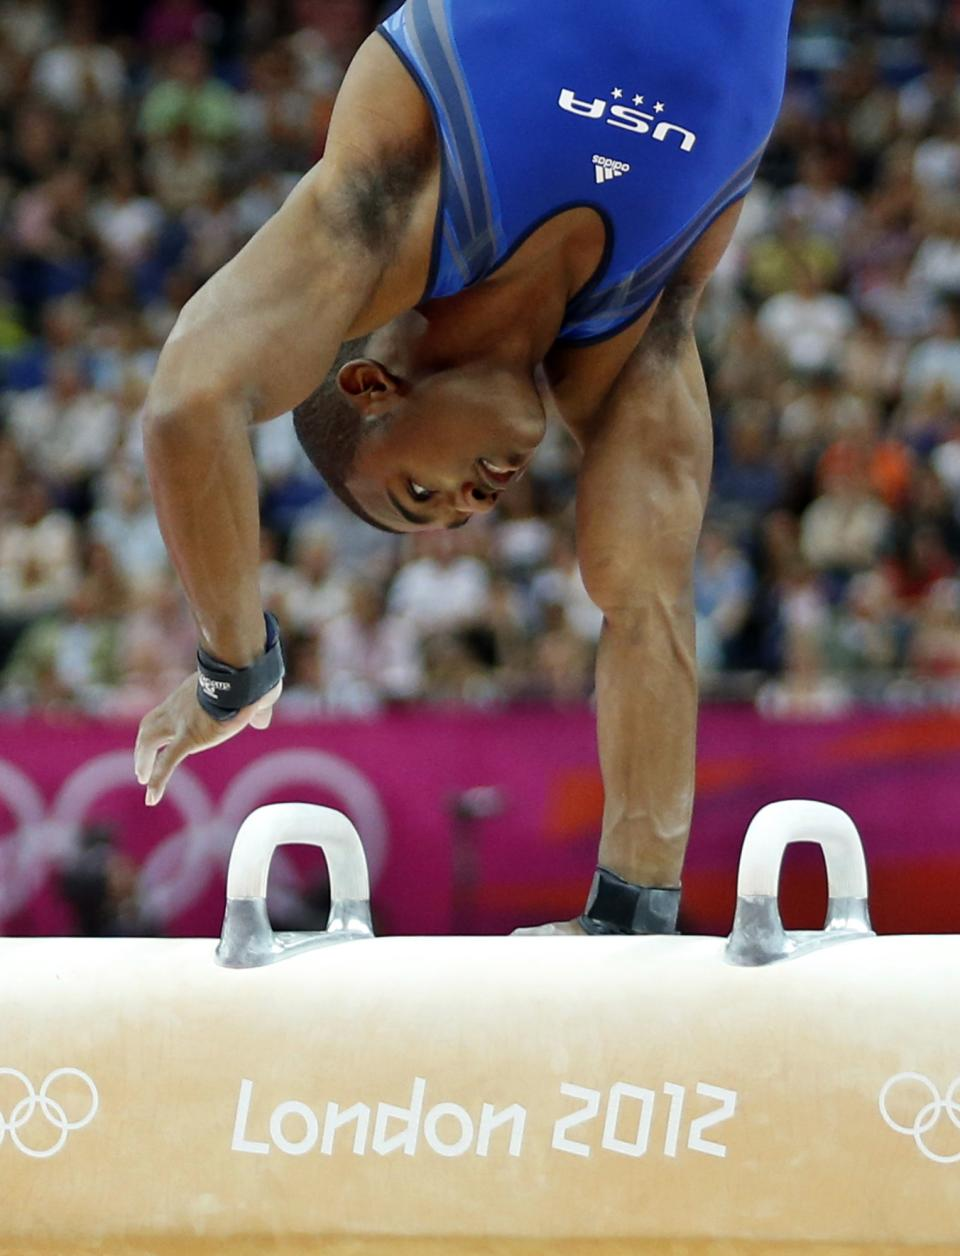 U.S. gymnast John Orozco performs on the pommel horse during the Artistic Gymnastics men's qualification at the 2012 Summer Olympics, Saturday, July 28, 2012, in London. (AP Photo/Matt Dunham)